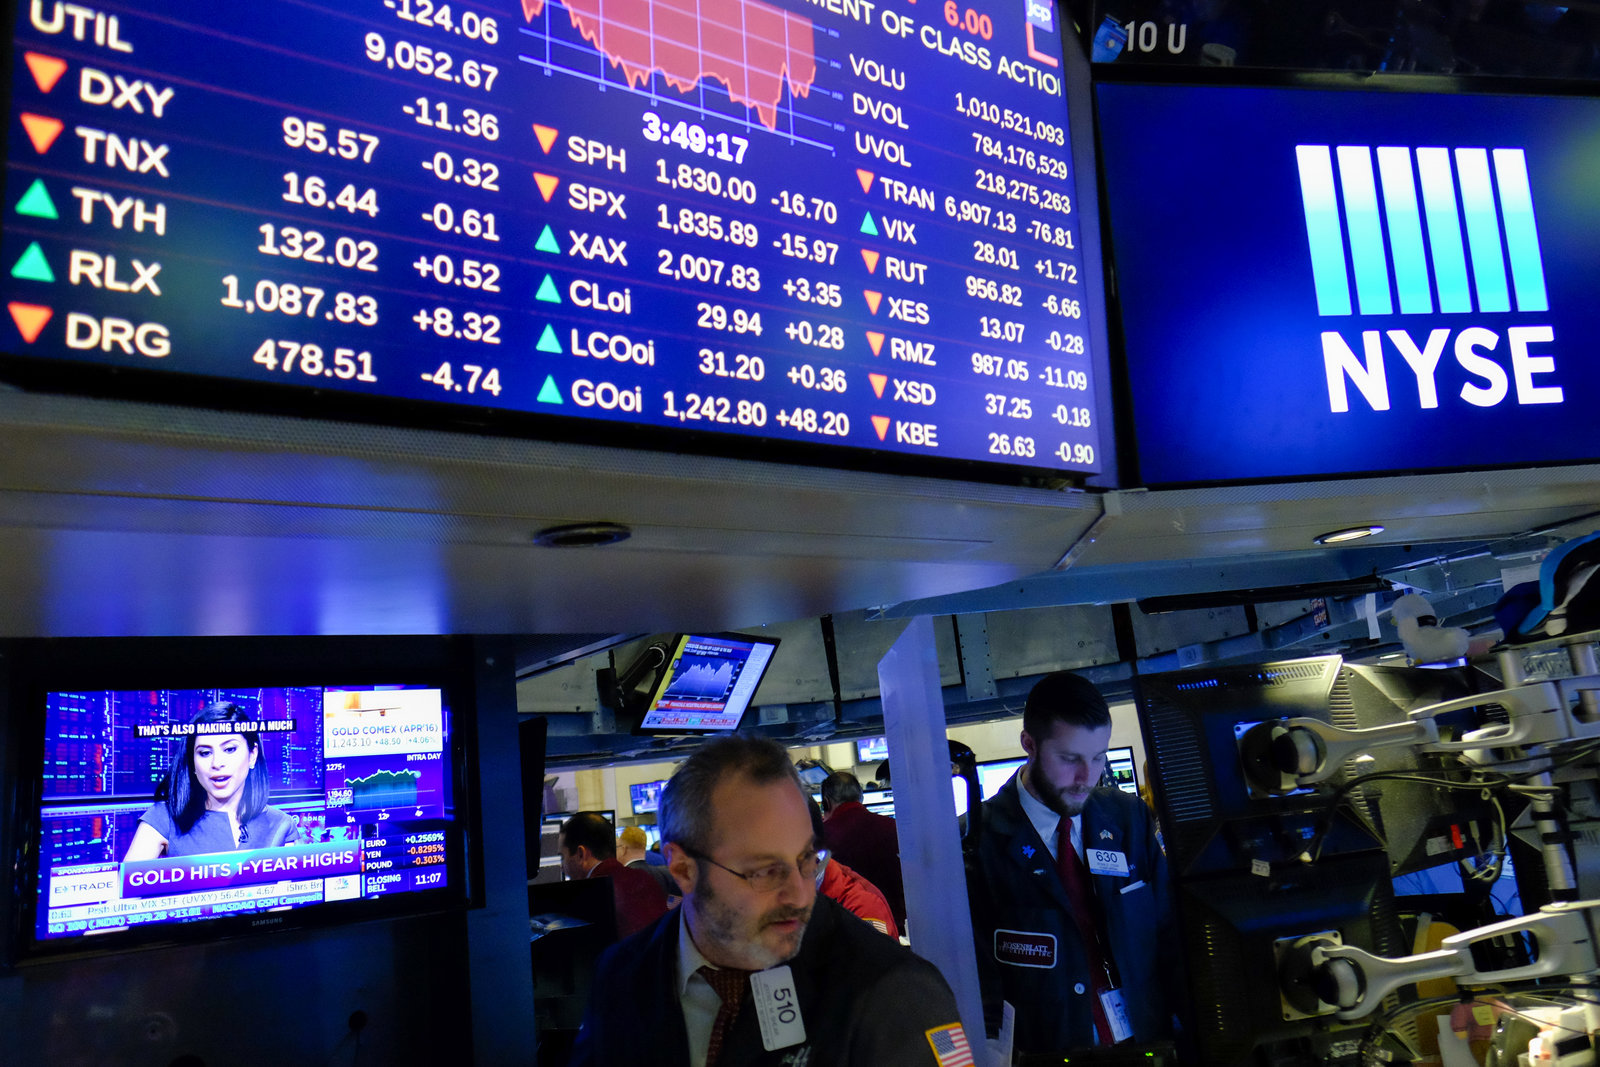 Falling oil prices have jolted the stock market and investment world